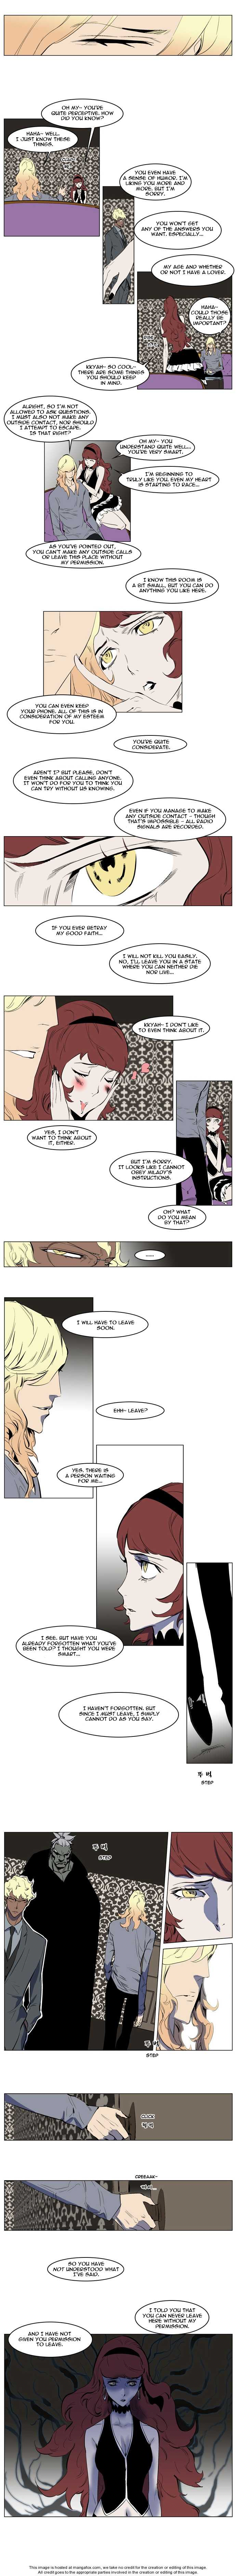 Noblesse 145 Page 3